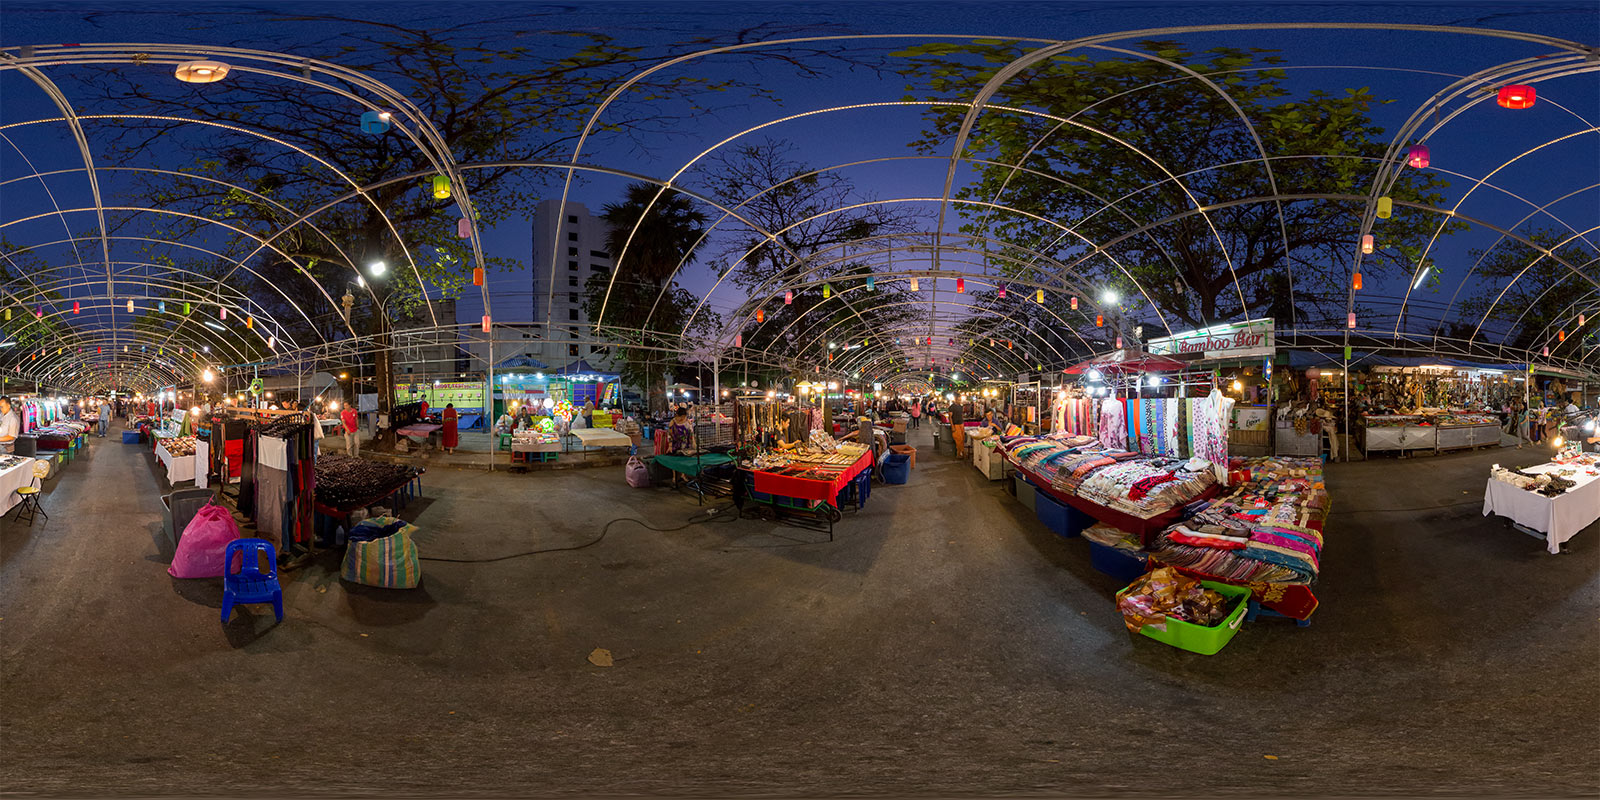 Anusan Night Market in Chiang Mai, Thailand. Panoramic photo by Jim Newberry.